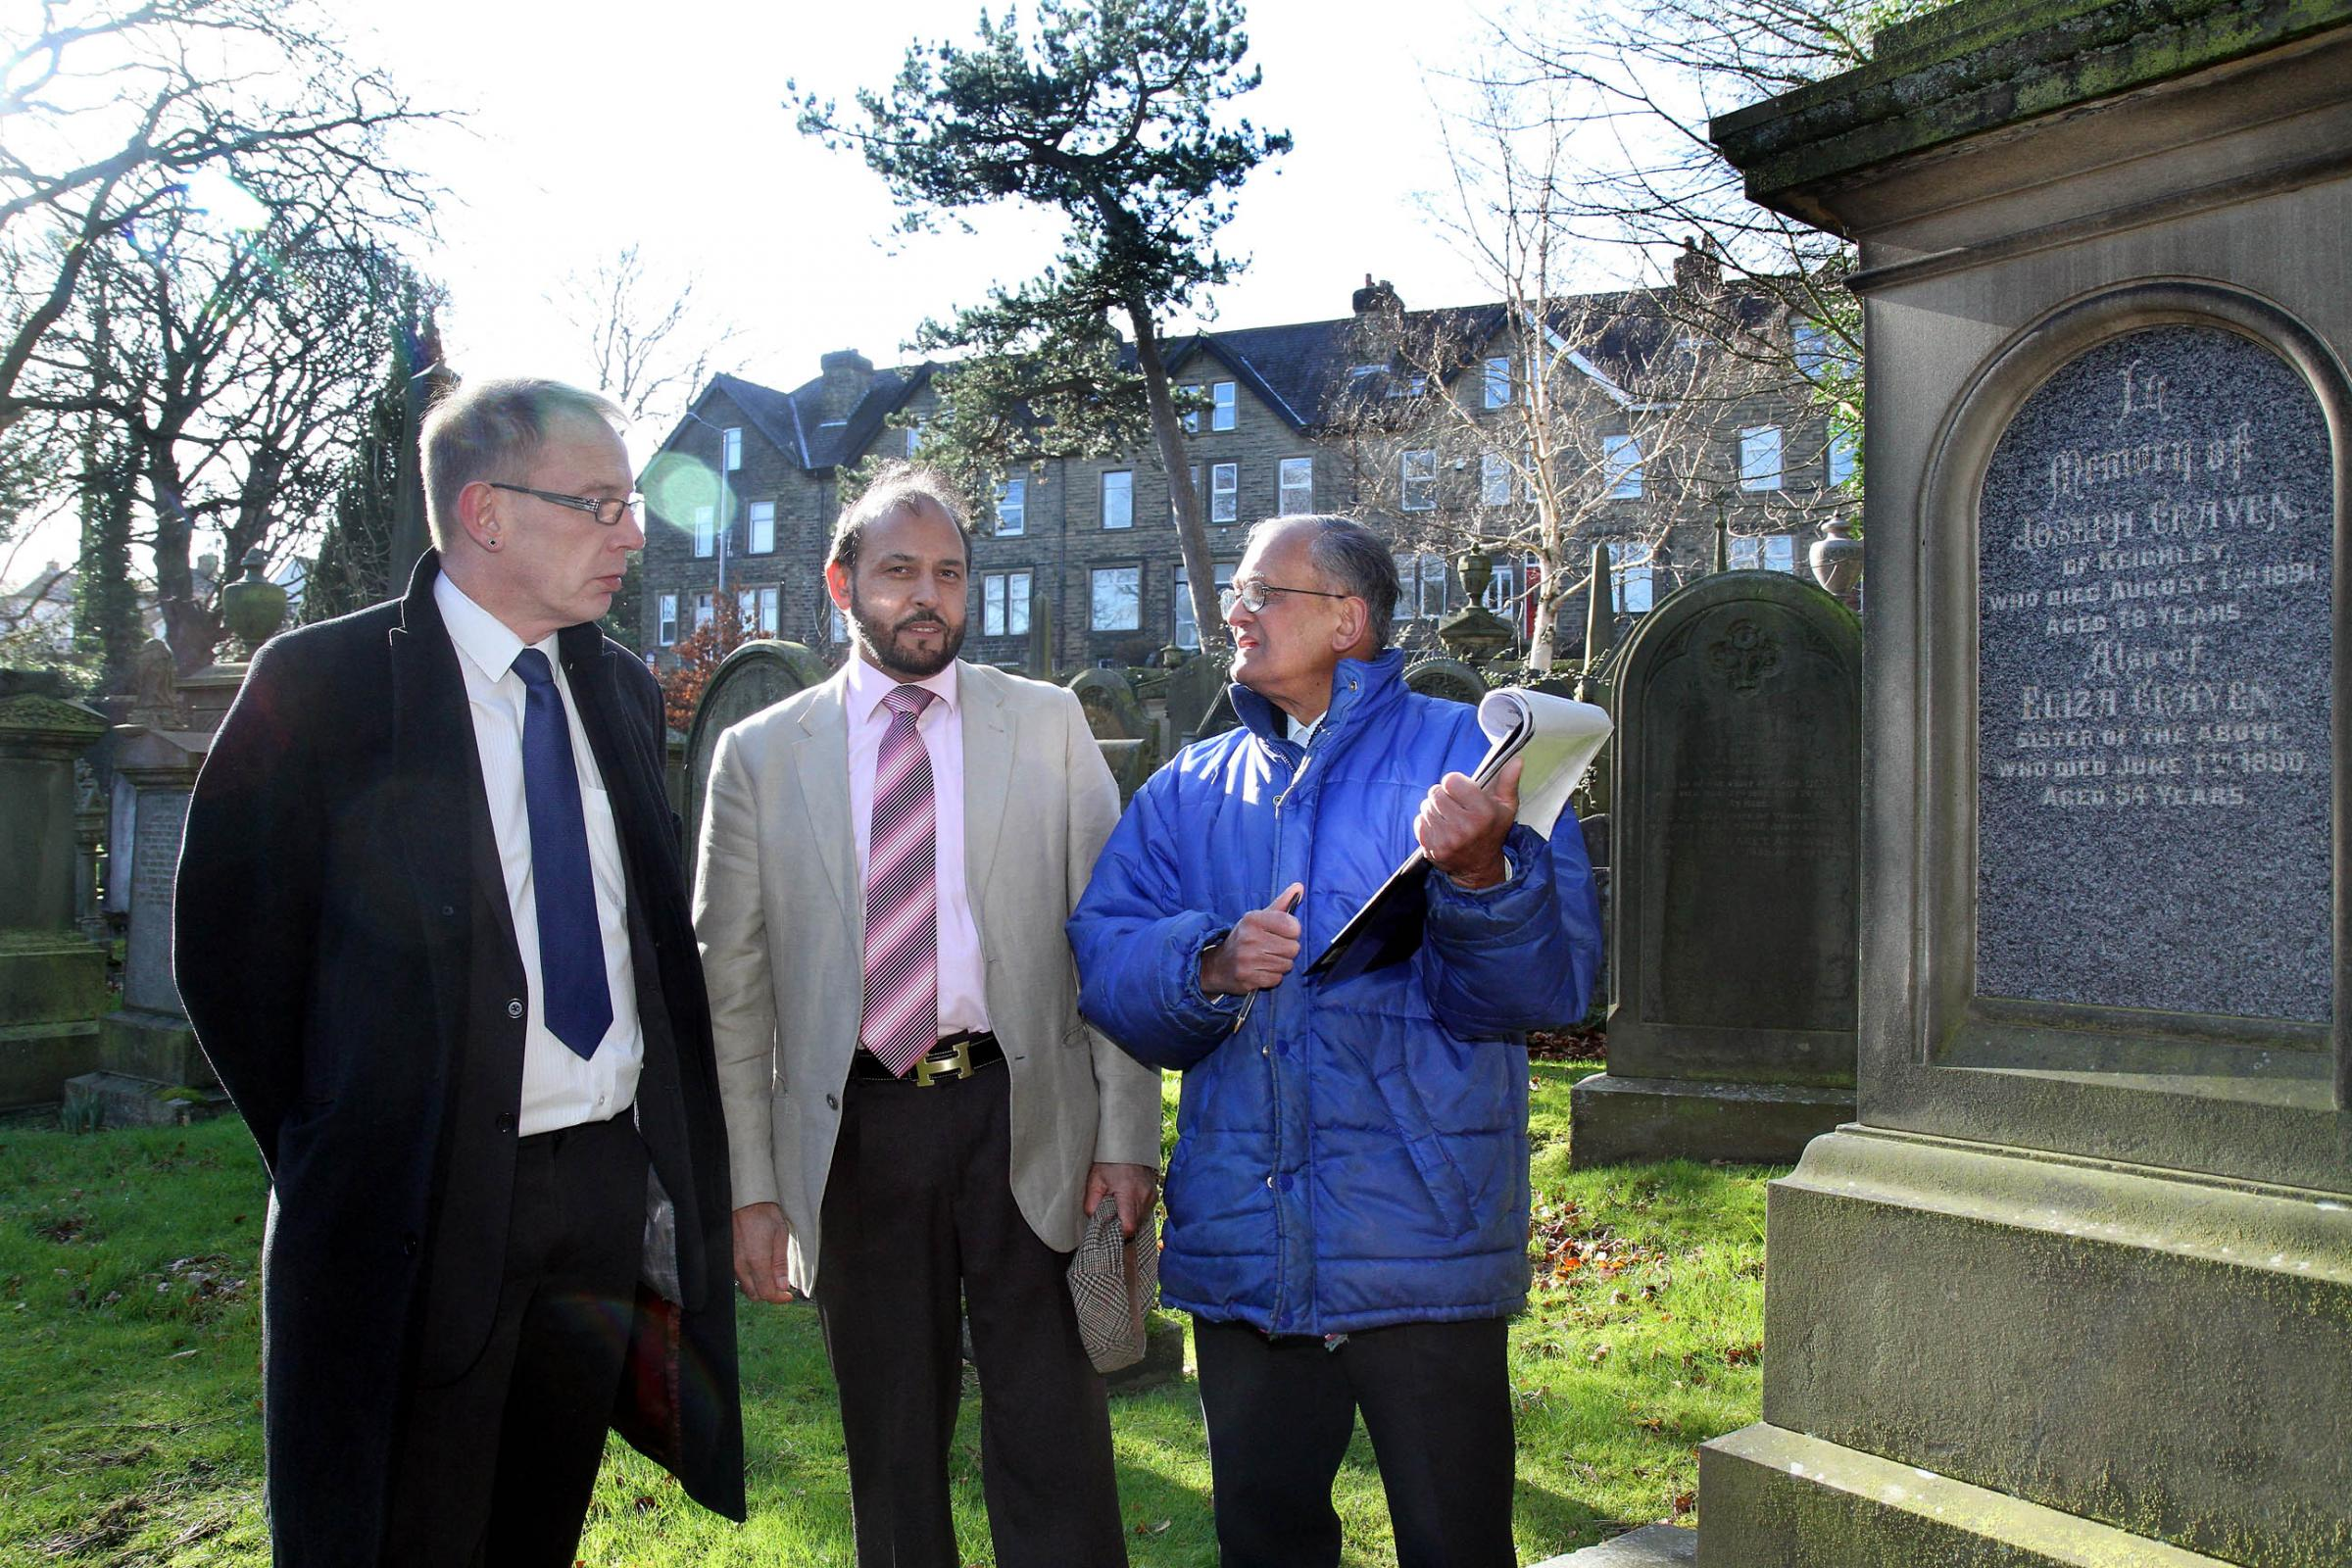 Bradford Council leader, Councillor Dave Green, left, and Councillor Abid Hussain, listen to concerns raised by Charlie Bhowmick at Utley Cemetery